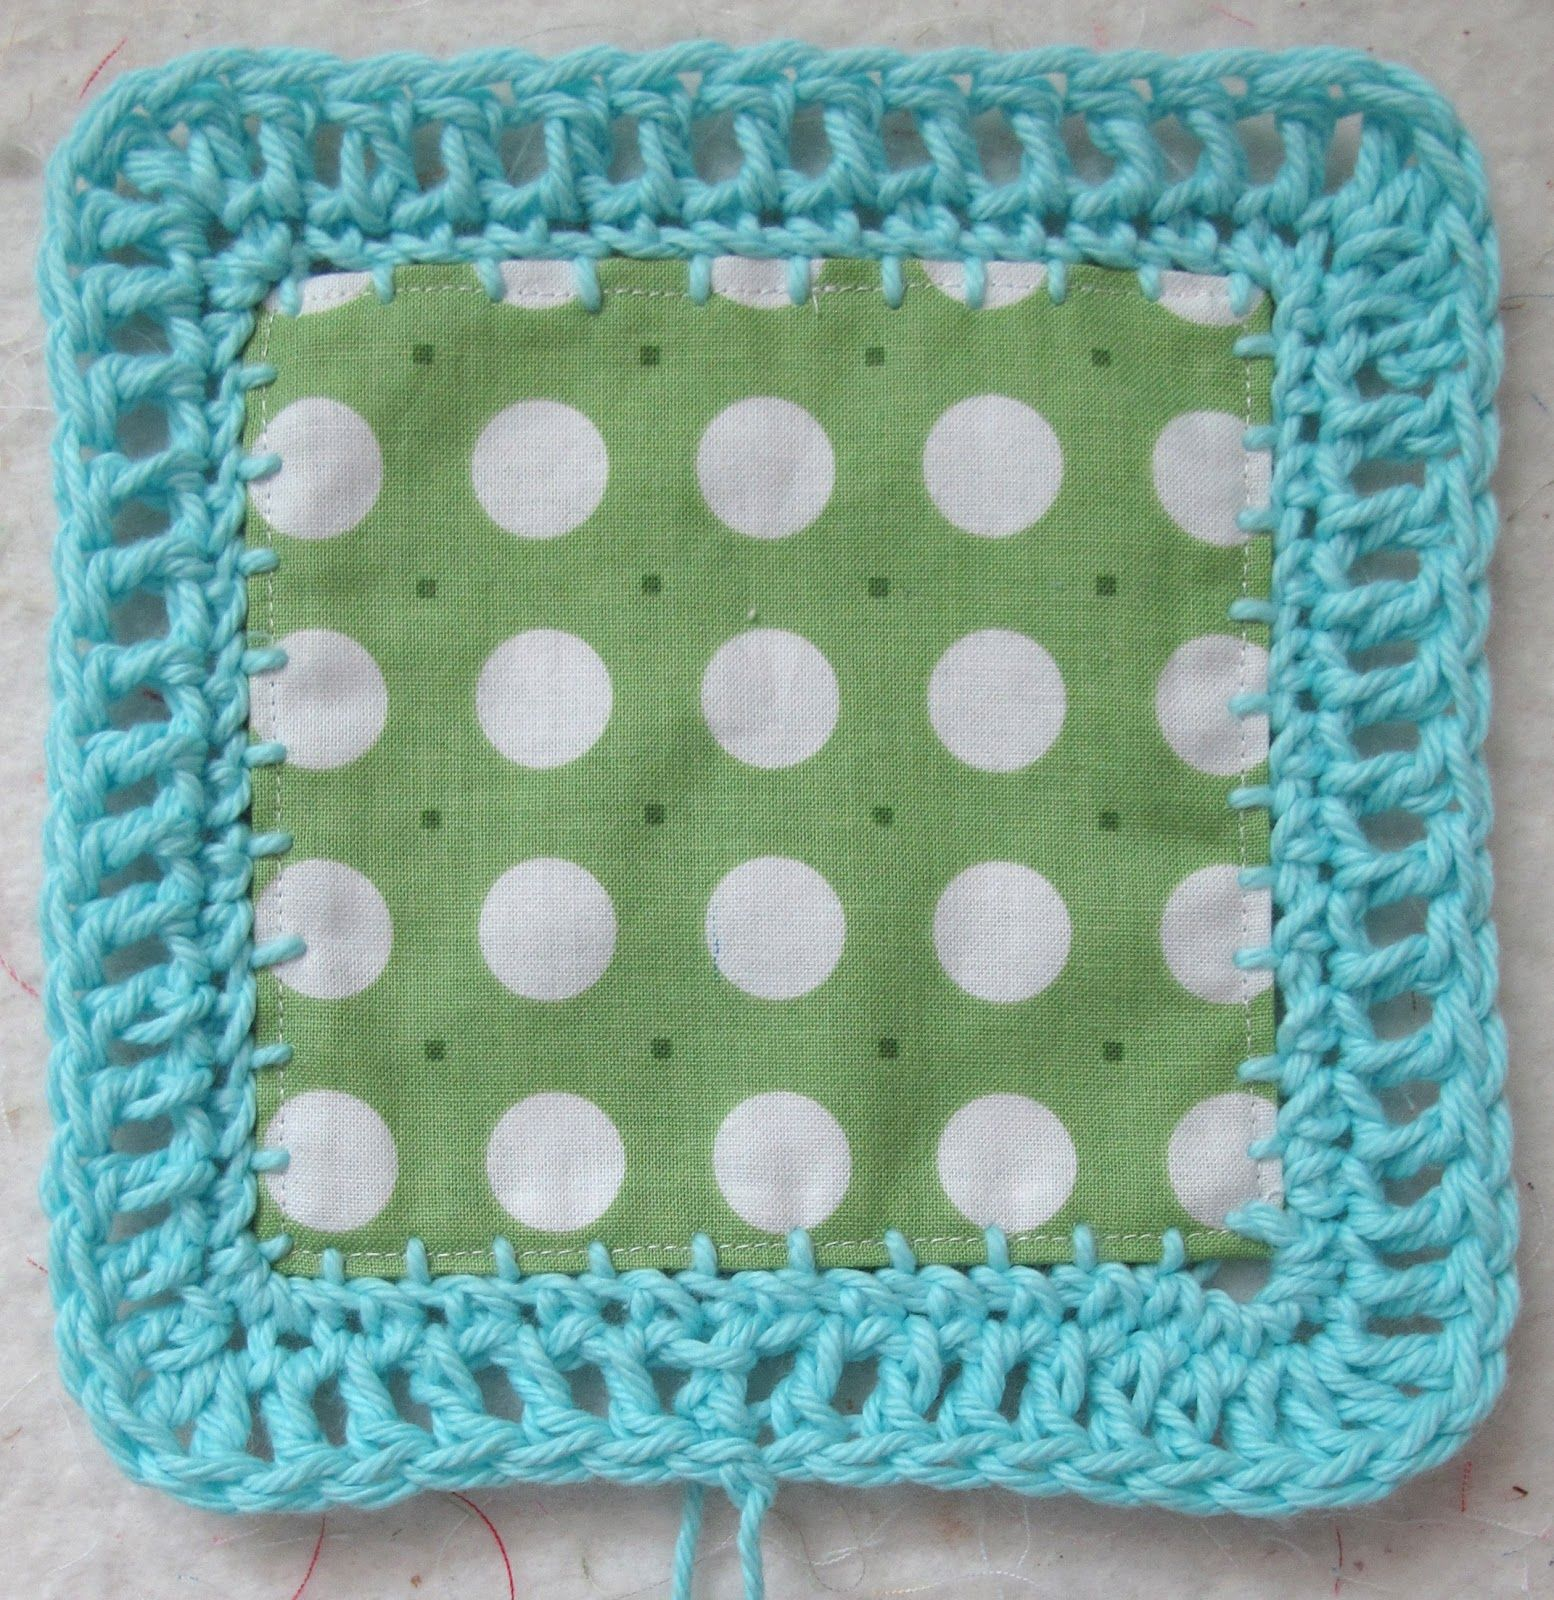 Bettdecken Zusammennähen Bee In My Bonnet Fusion Blanket Crochet Along Häkeln